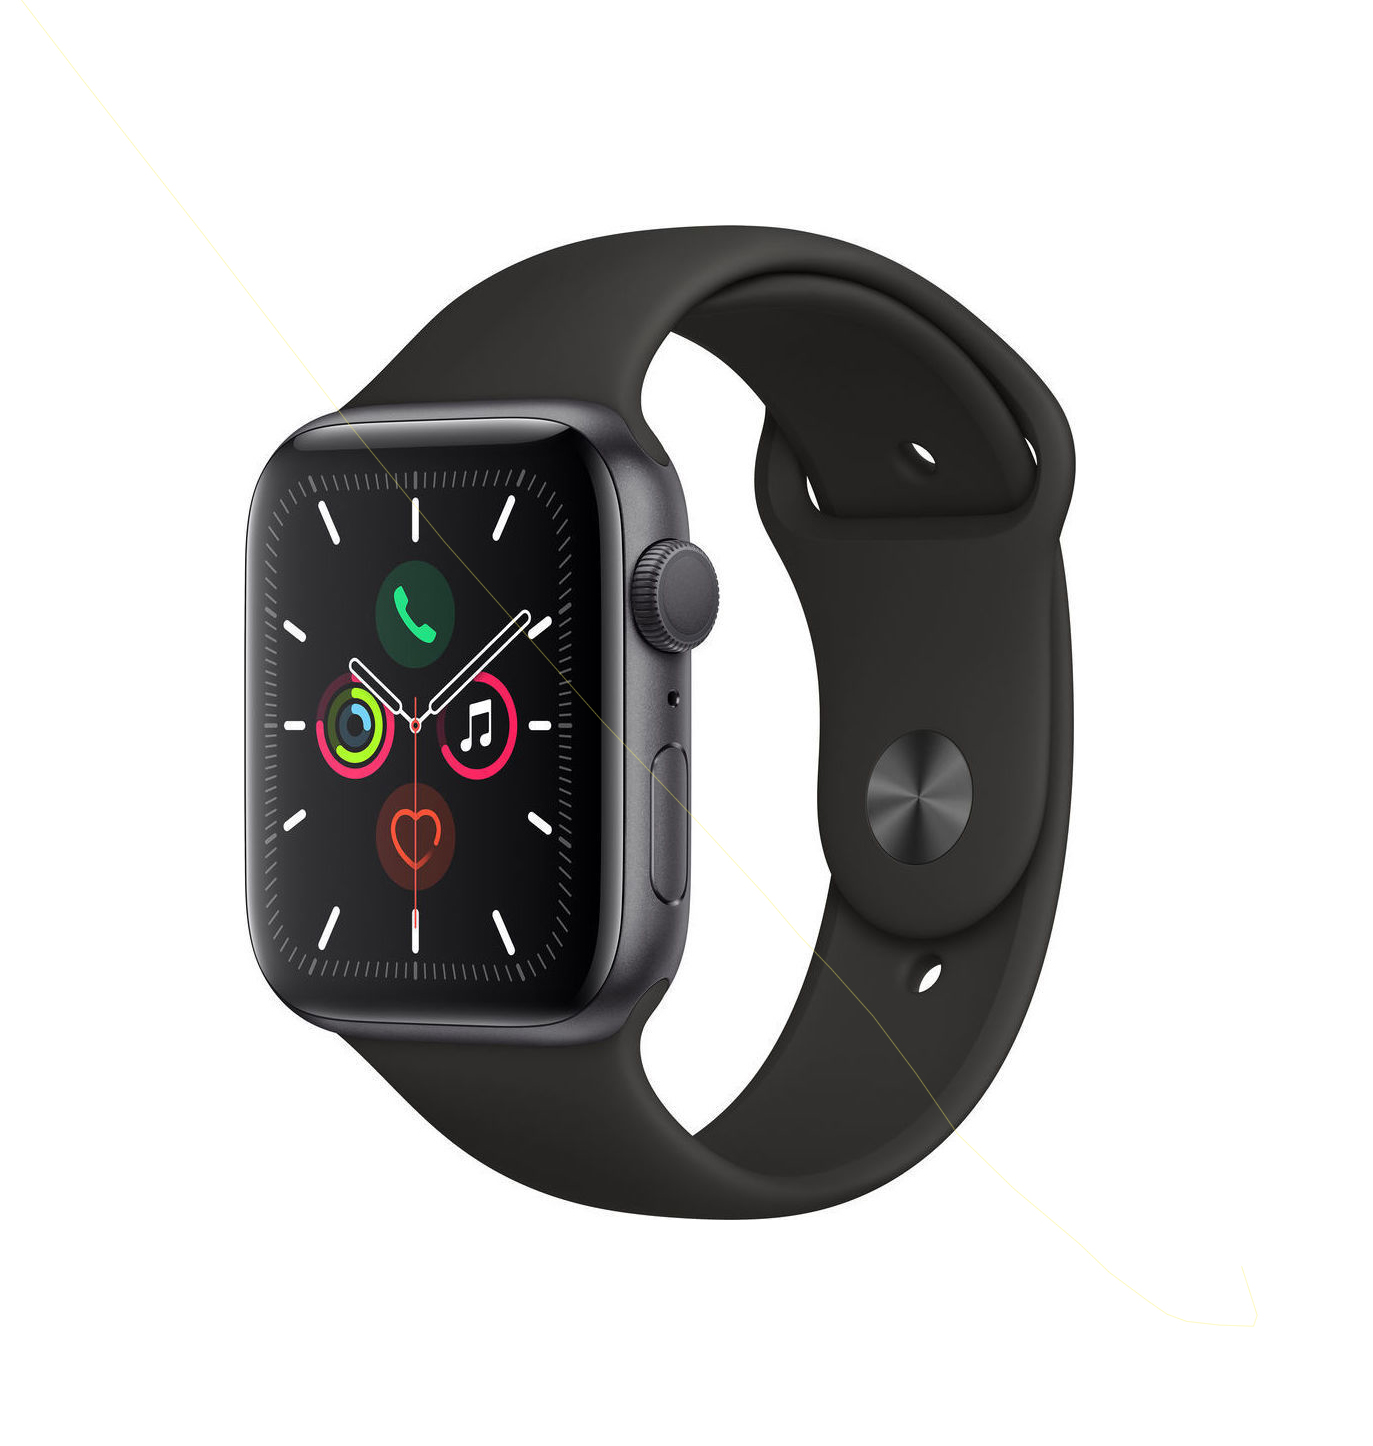 Apple Watch Series 5 44mm Cellular Aluminium Space Grey Sport Band MWWE2 Πληρωμή έως 24 δόσεις